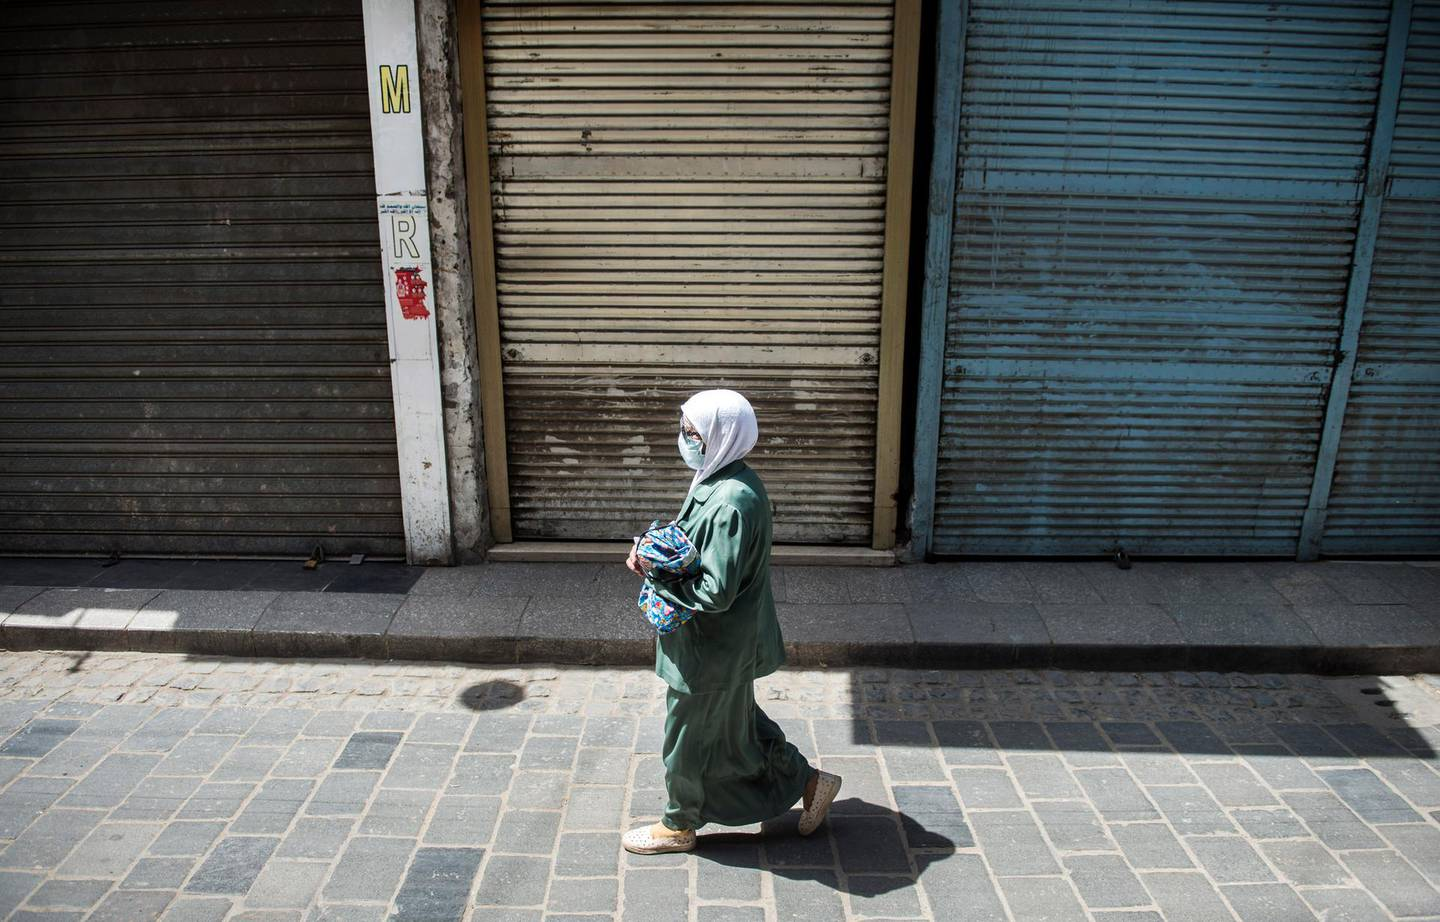 epa08340838 A woman wearing face mask walks in front of closed shops, in Cairo, Egypt, 03 April 2020. Egyptian authorities have imposed a two-week-long curfew, starting on 25 March, during which all public transportation in the city is suspended due to the ongoing pandemic of the Covid-19 disease caused by the SARS-CoV-2 coronavirus.  EPA/Mohamed Hossam